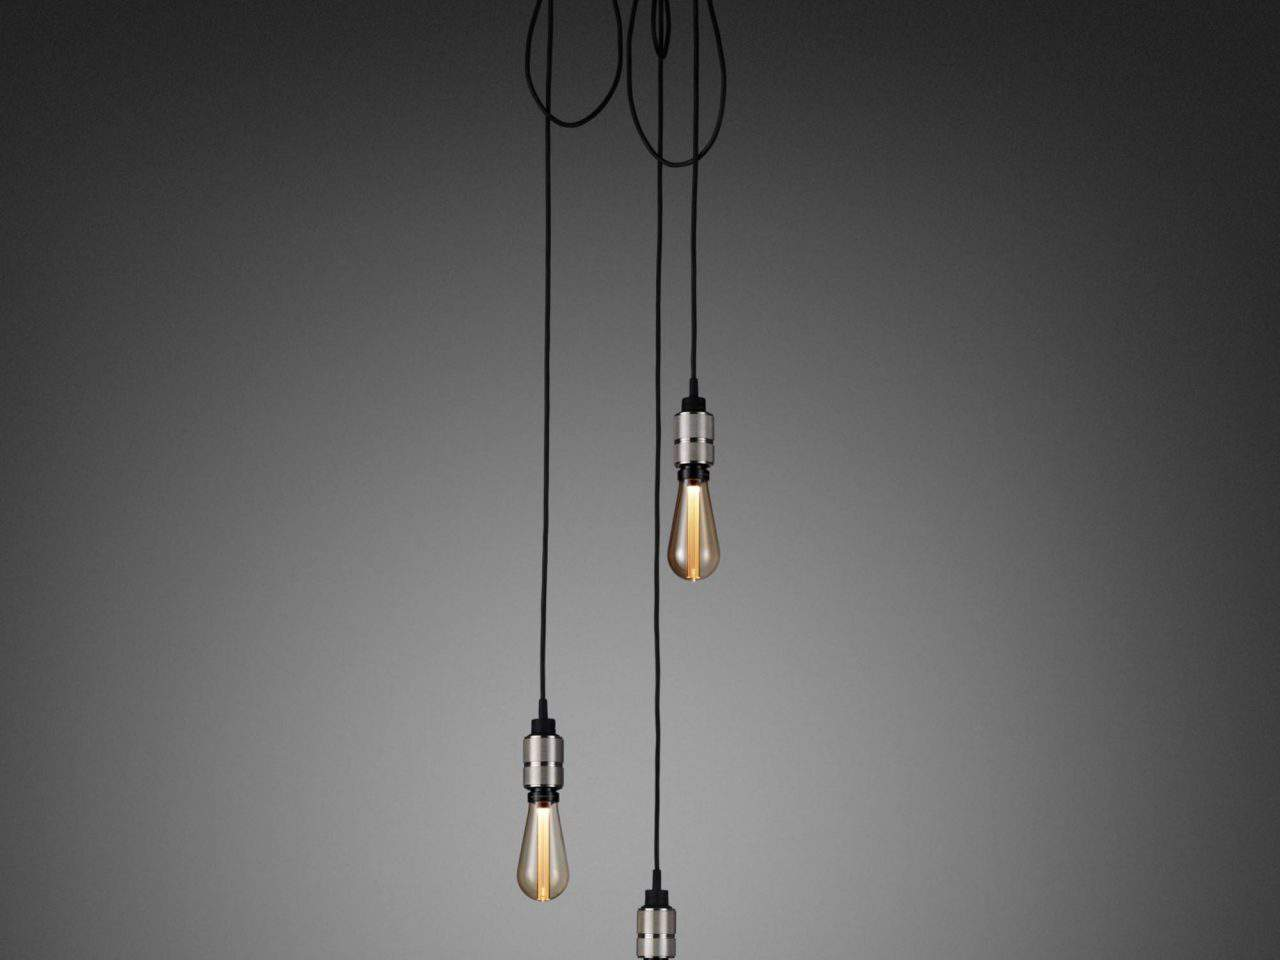 https://hadleyparker.com/wp-content/uploads/2020/10/hooked_wall_nude_graphite_brass_with_buster_bulb_gold_on_26_-1280x960.jpg